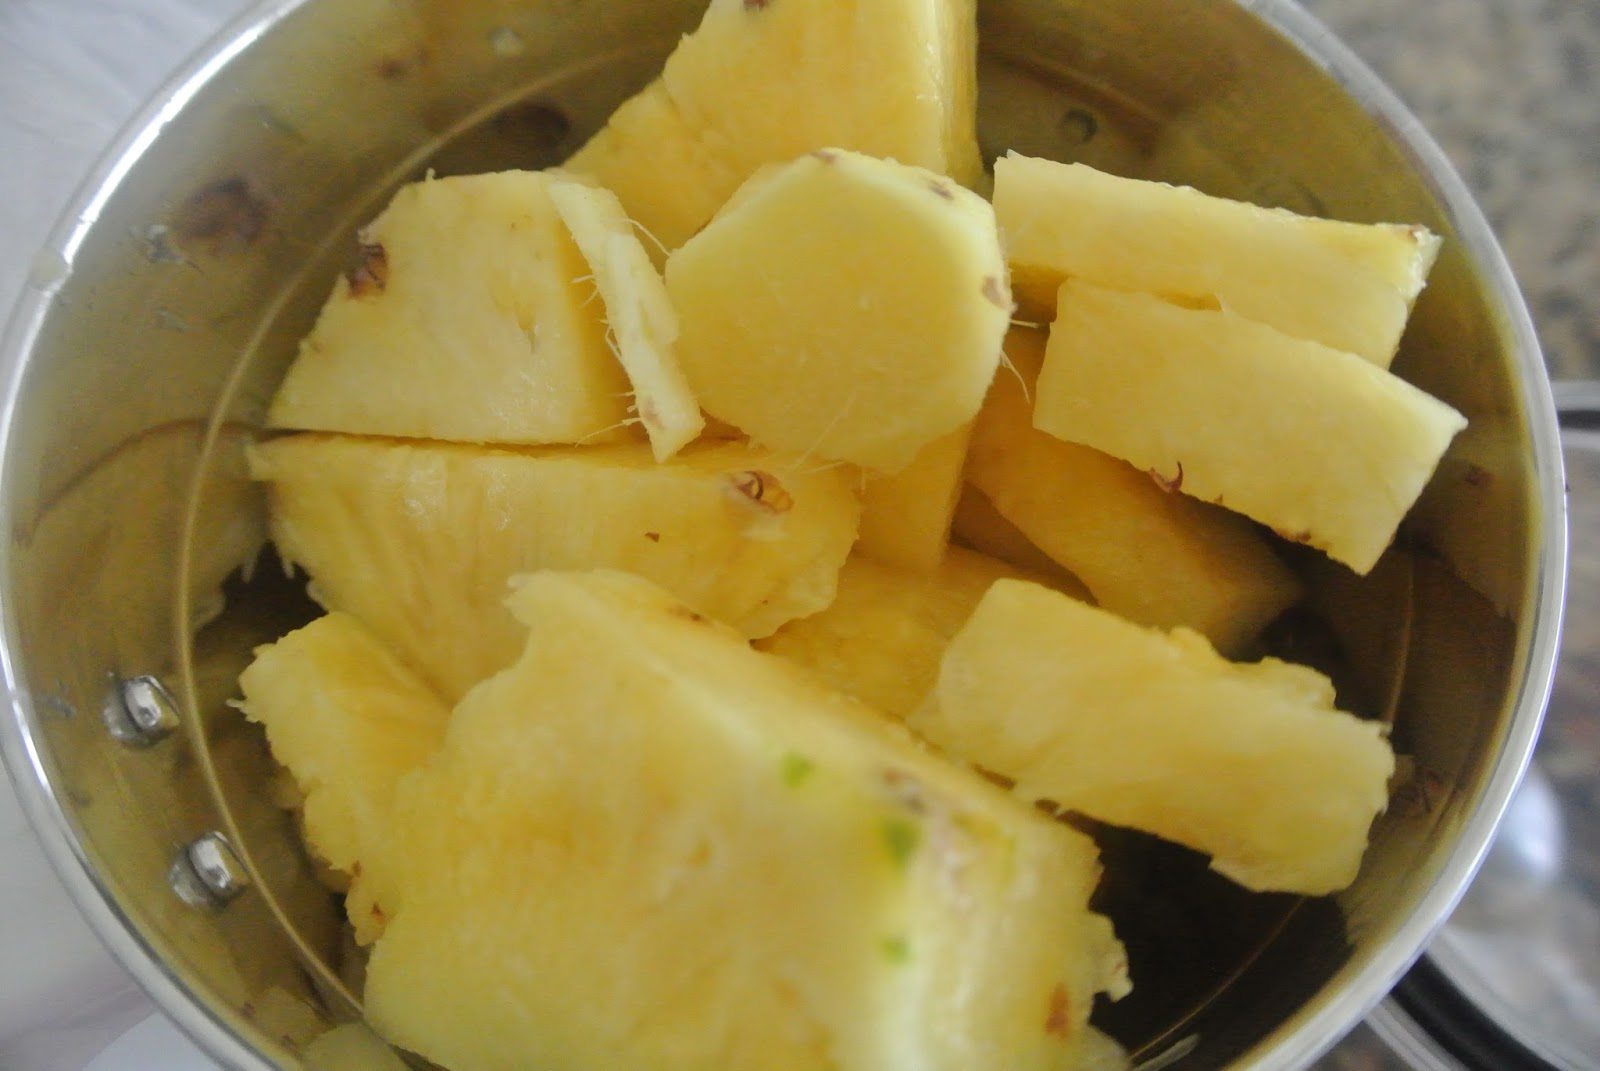 Snacks for weight loss - Pineapple with Sea Salt and lime juice